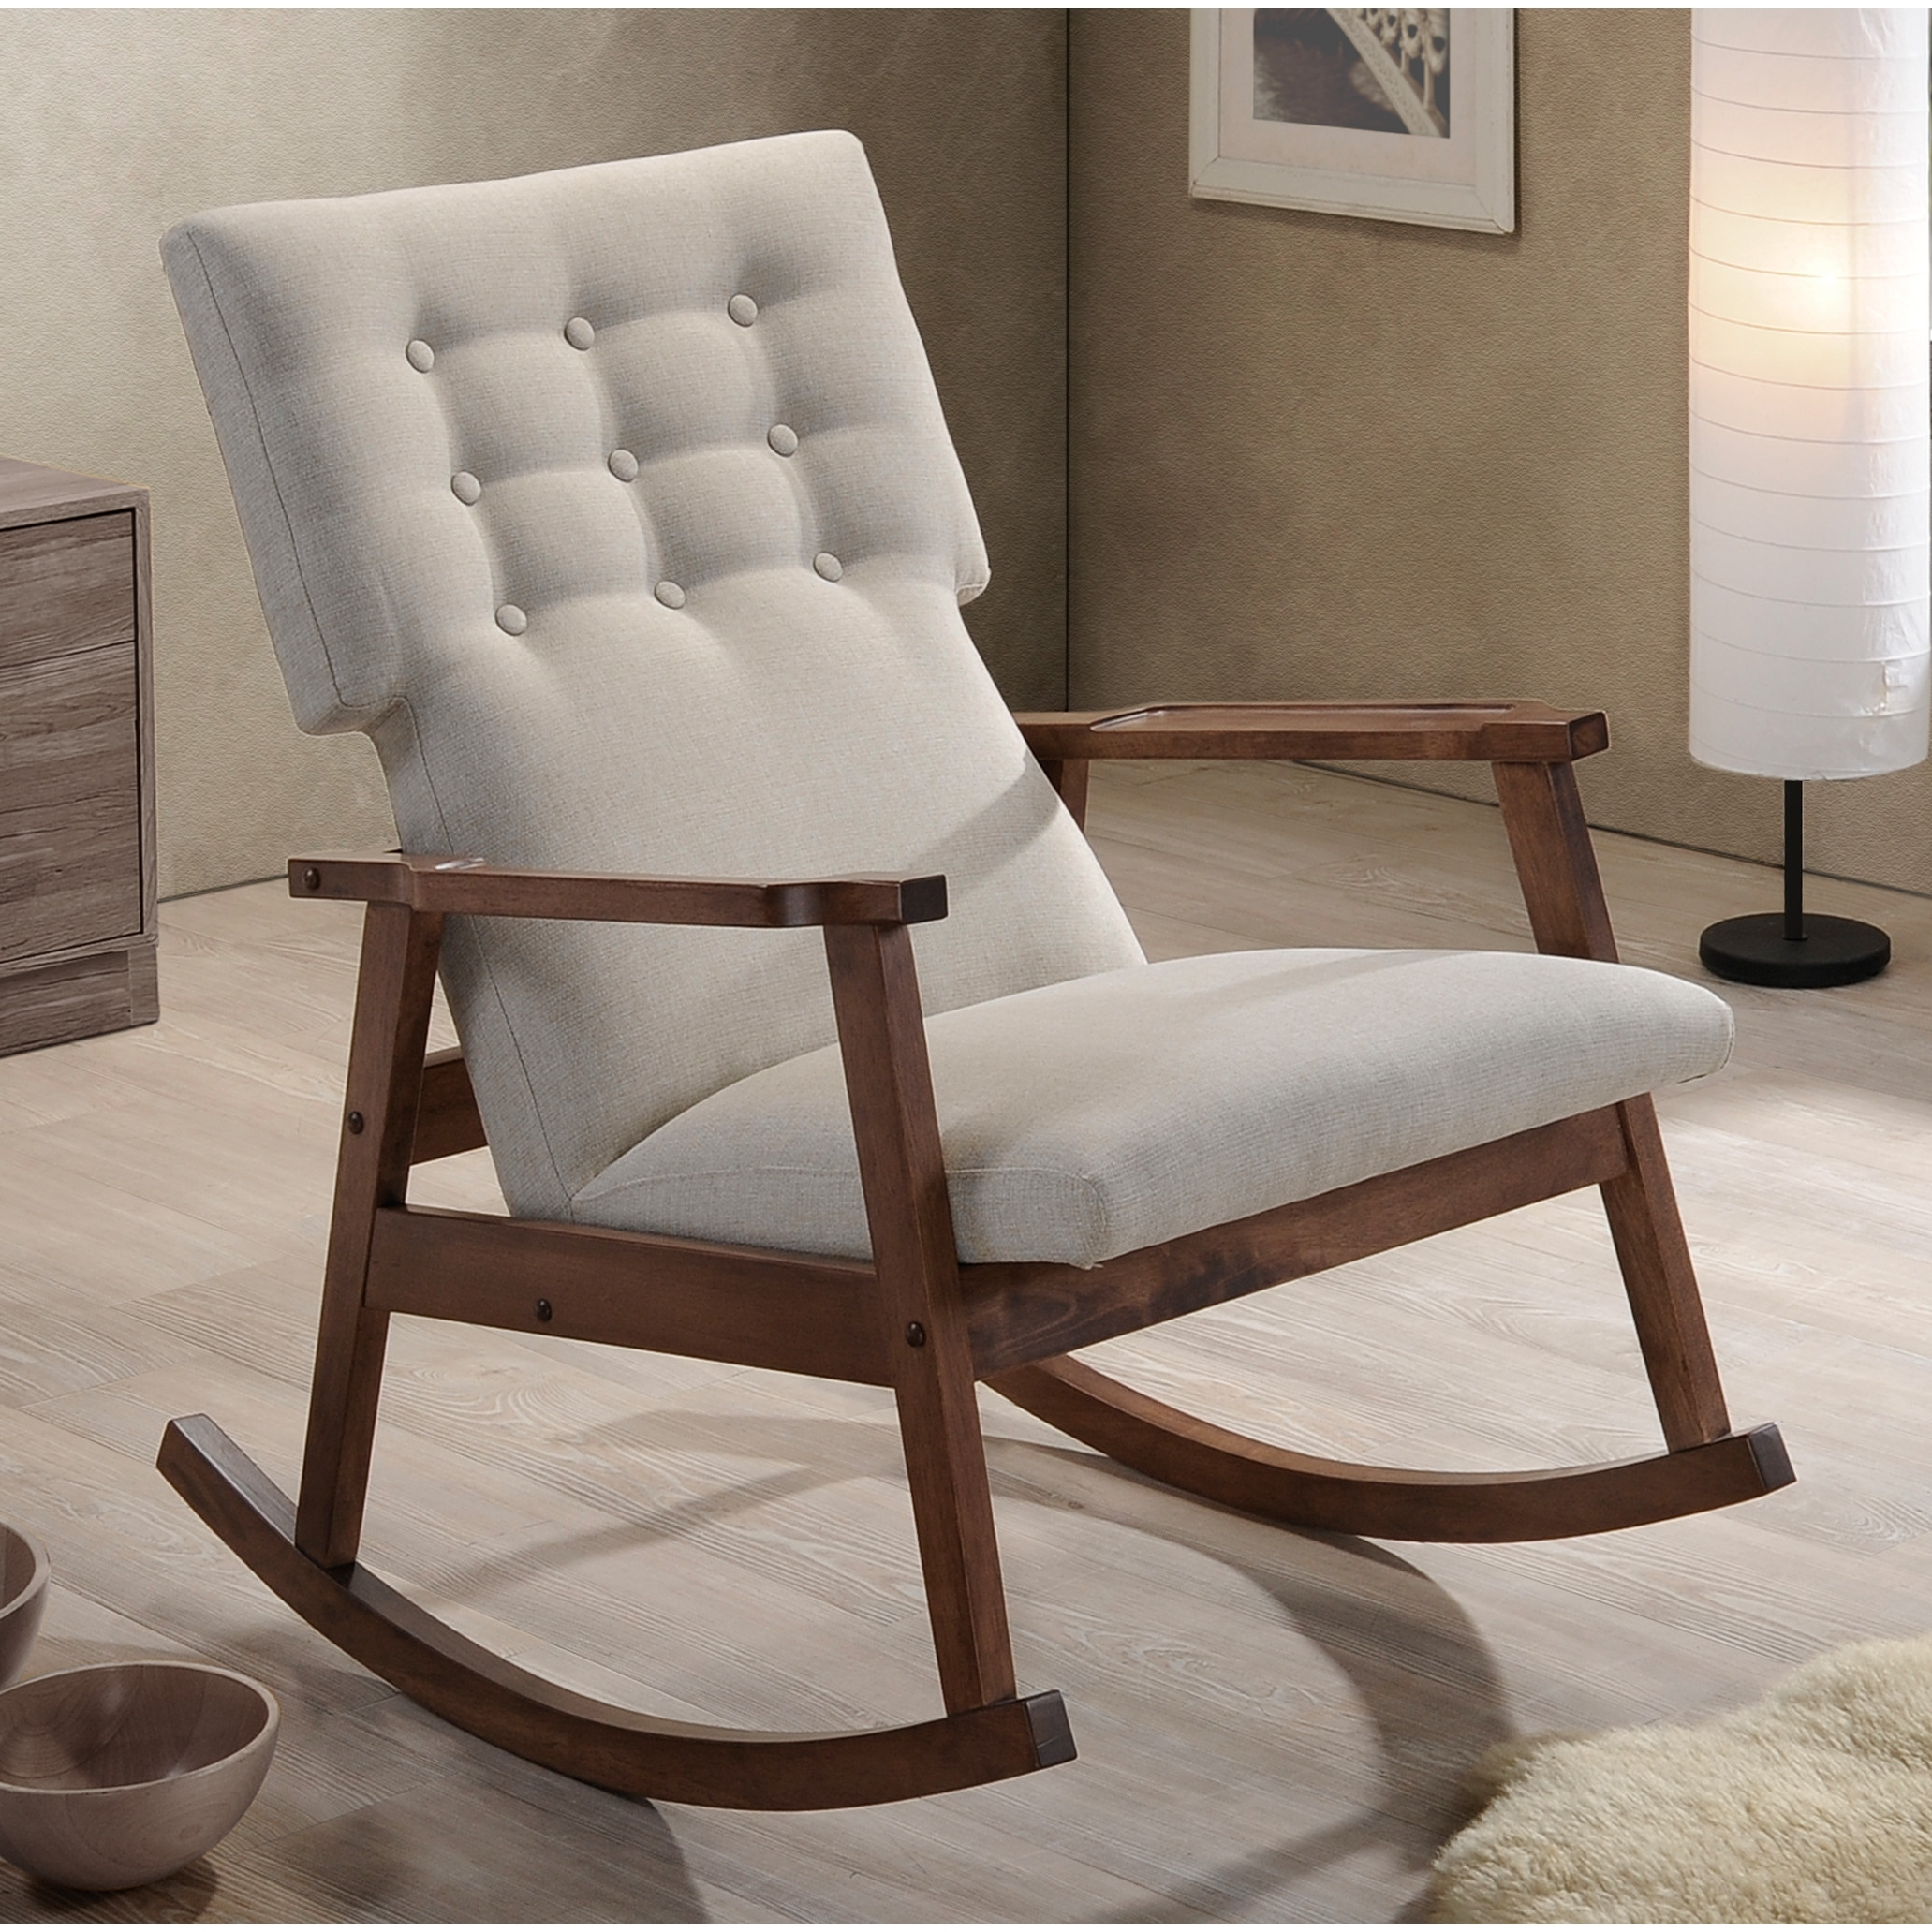 High Back Rocking Chairs Pertaining To Widely Used High Back Rocking Chair – Modern Chairs Quality Interior  (View 11 of 20)